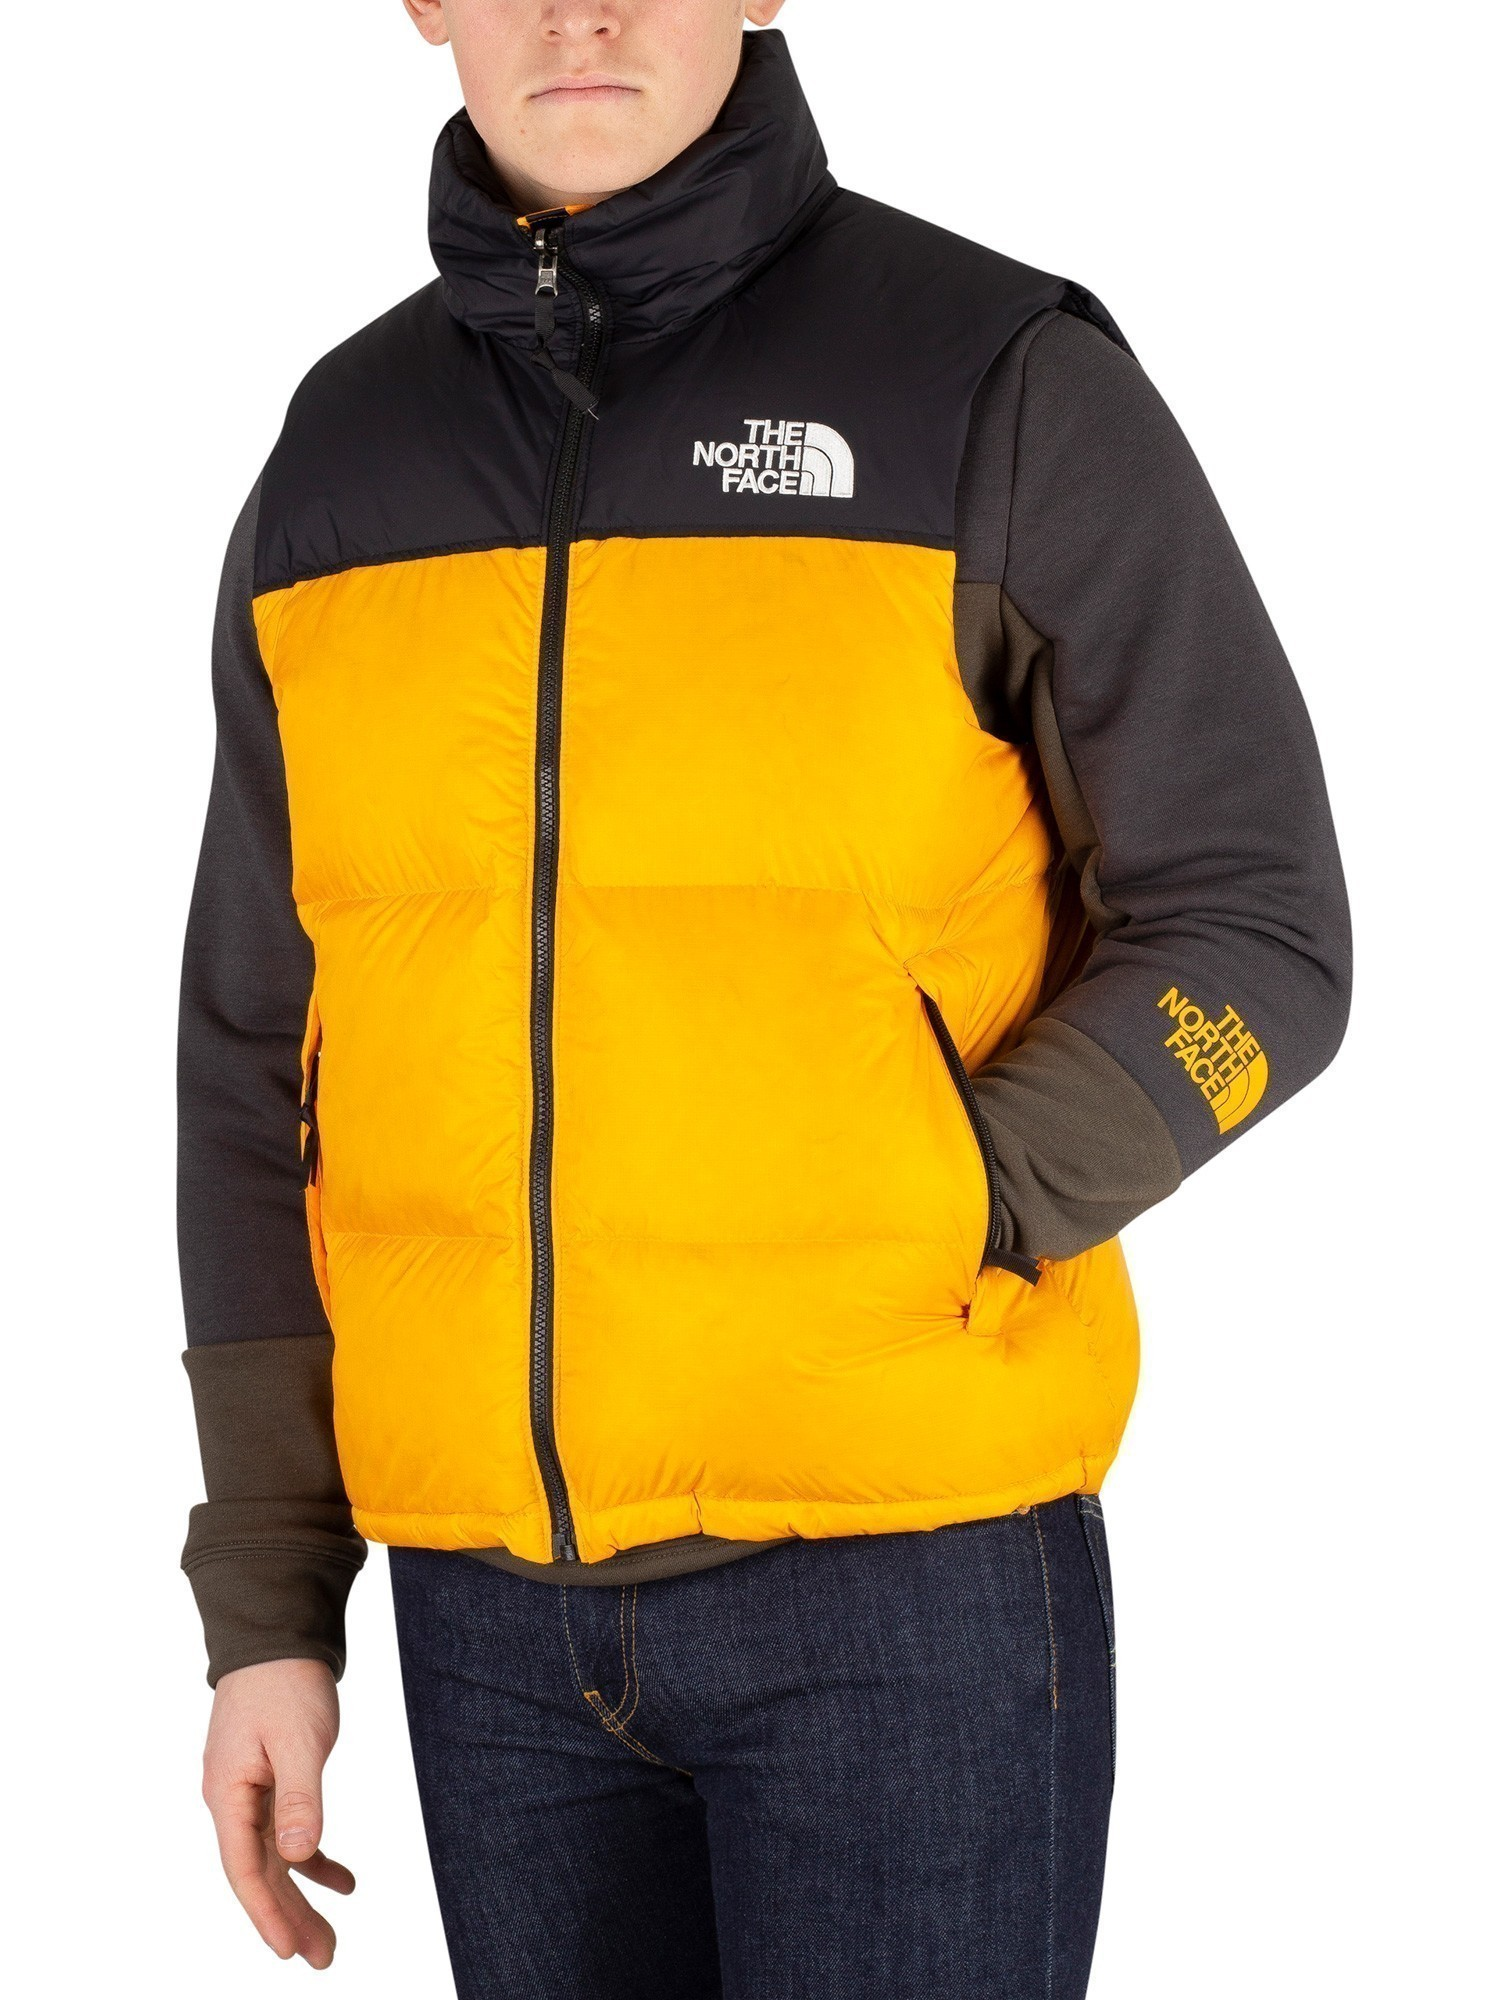 The North Face  1996 Retro Nimbus Gilet